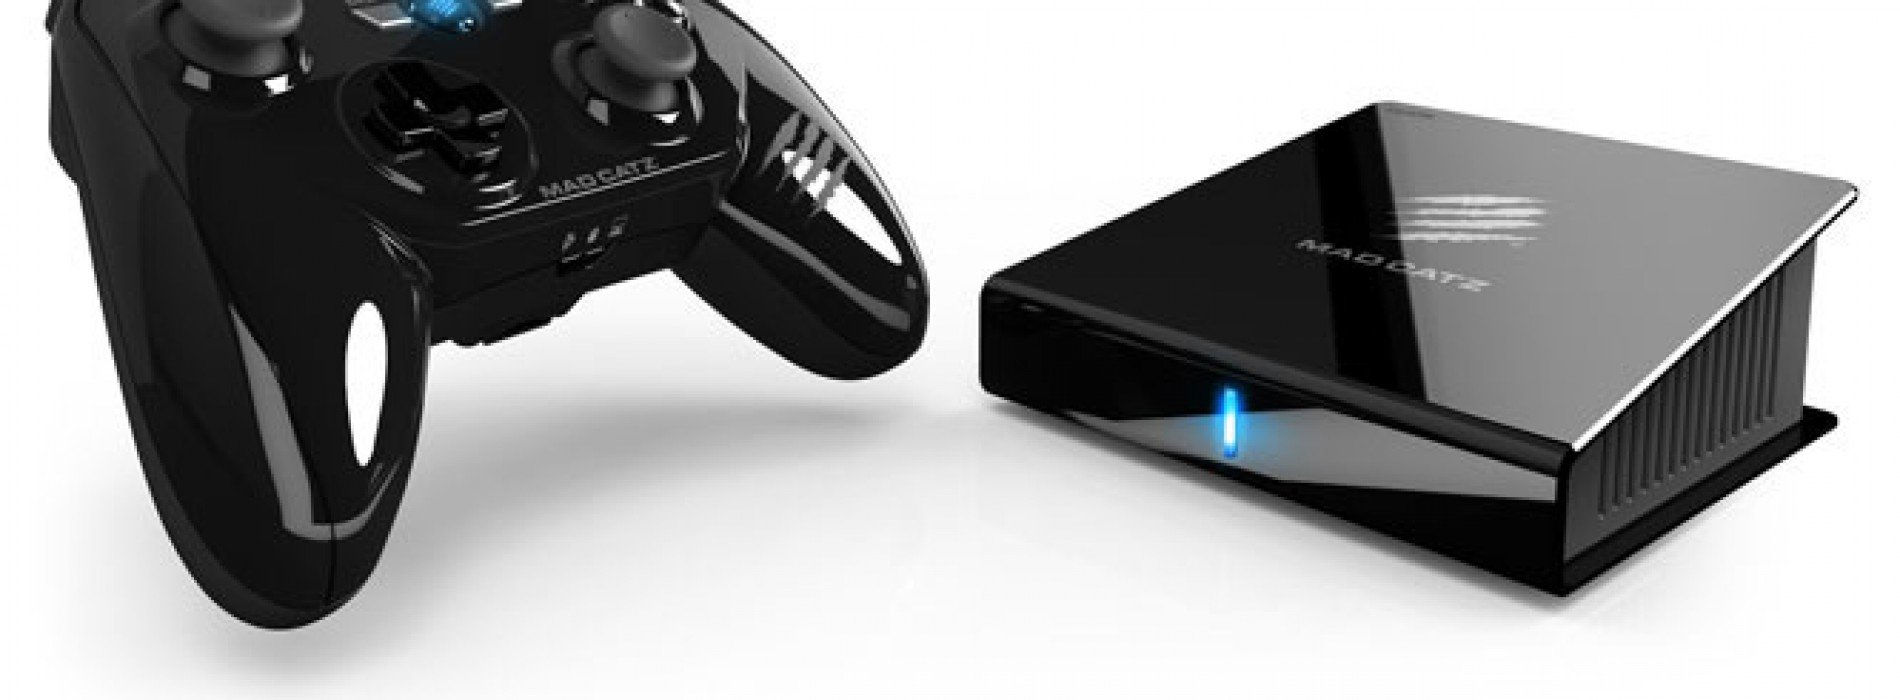 Mad Catz M.O.J.O. Android game console launches December 10th for $250